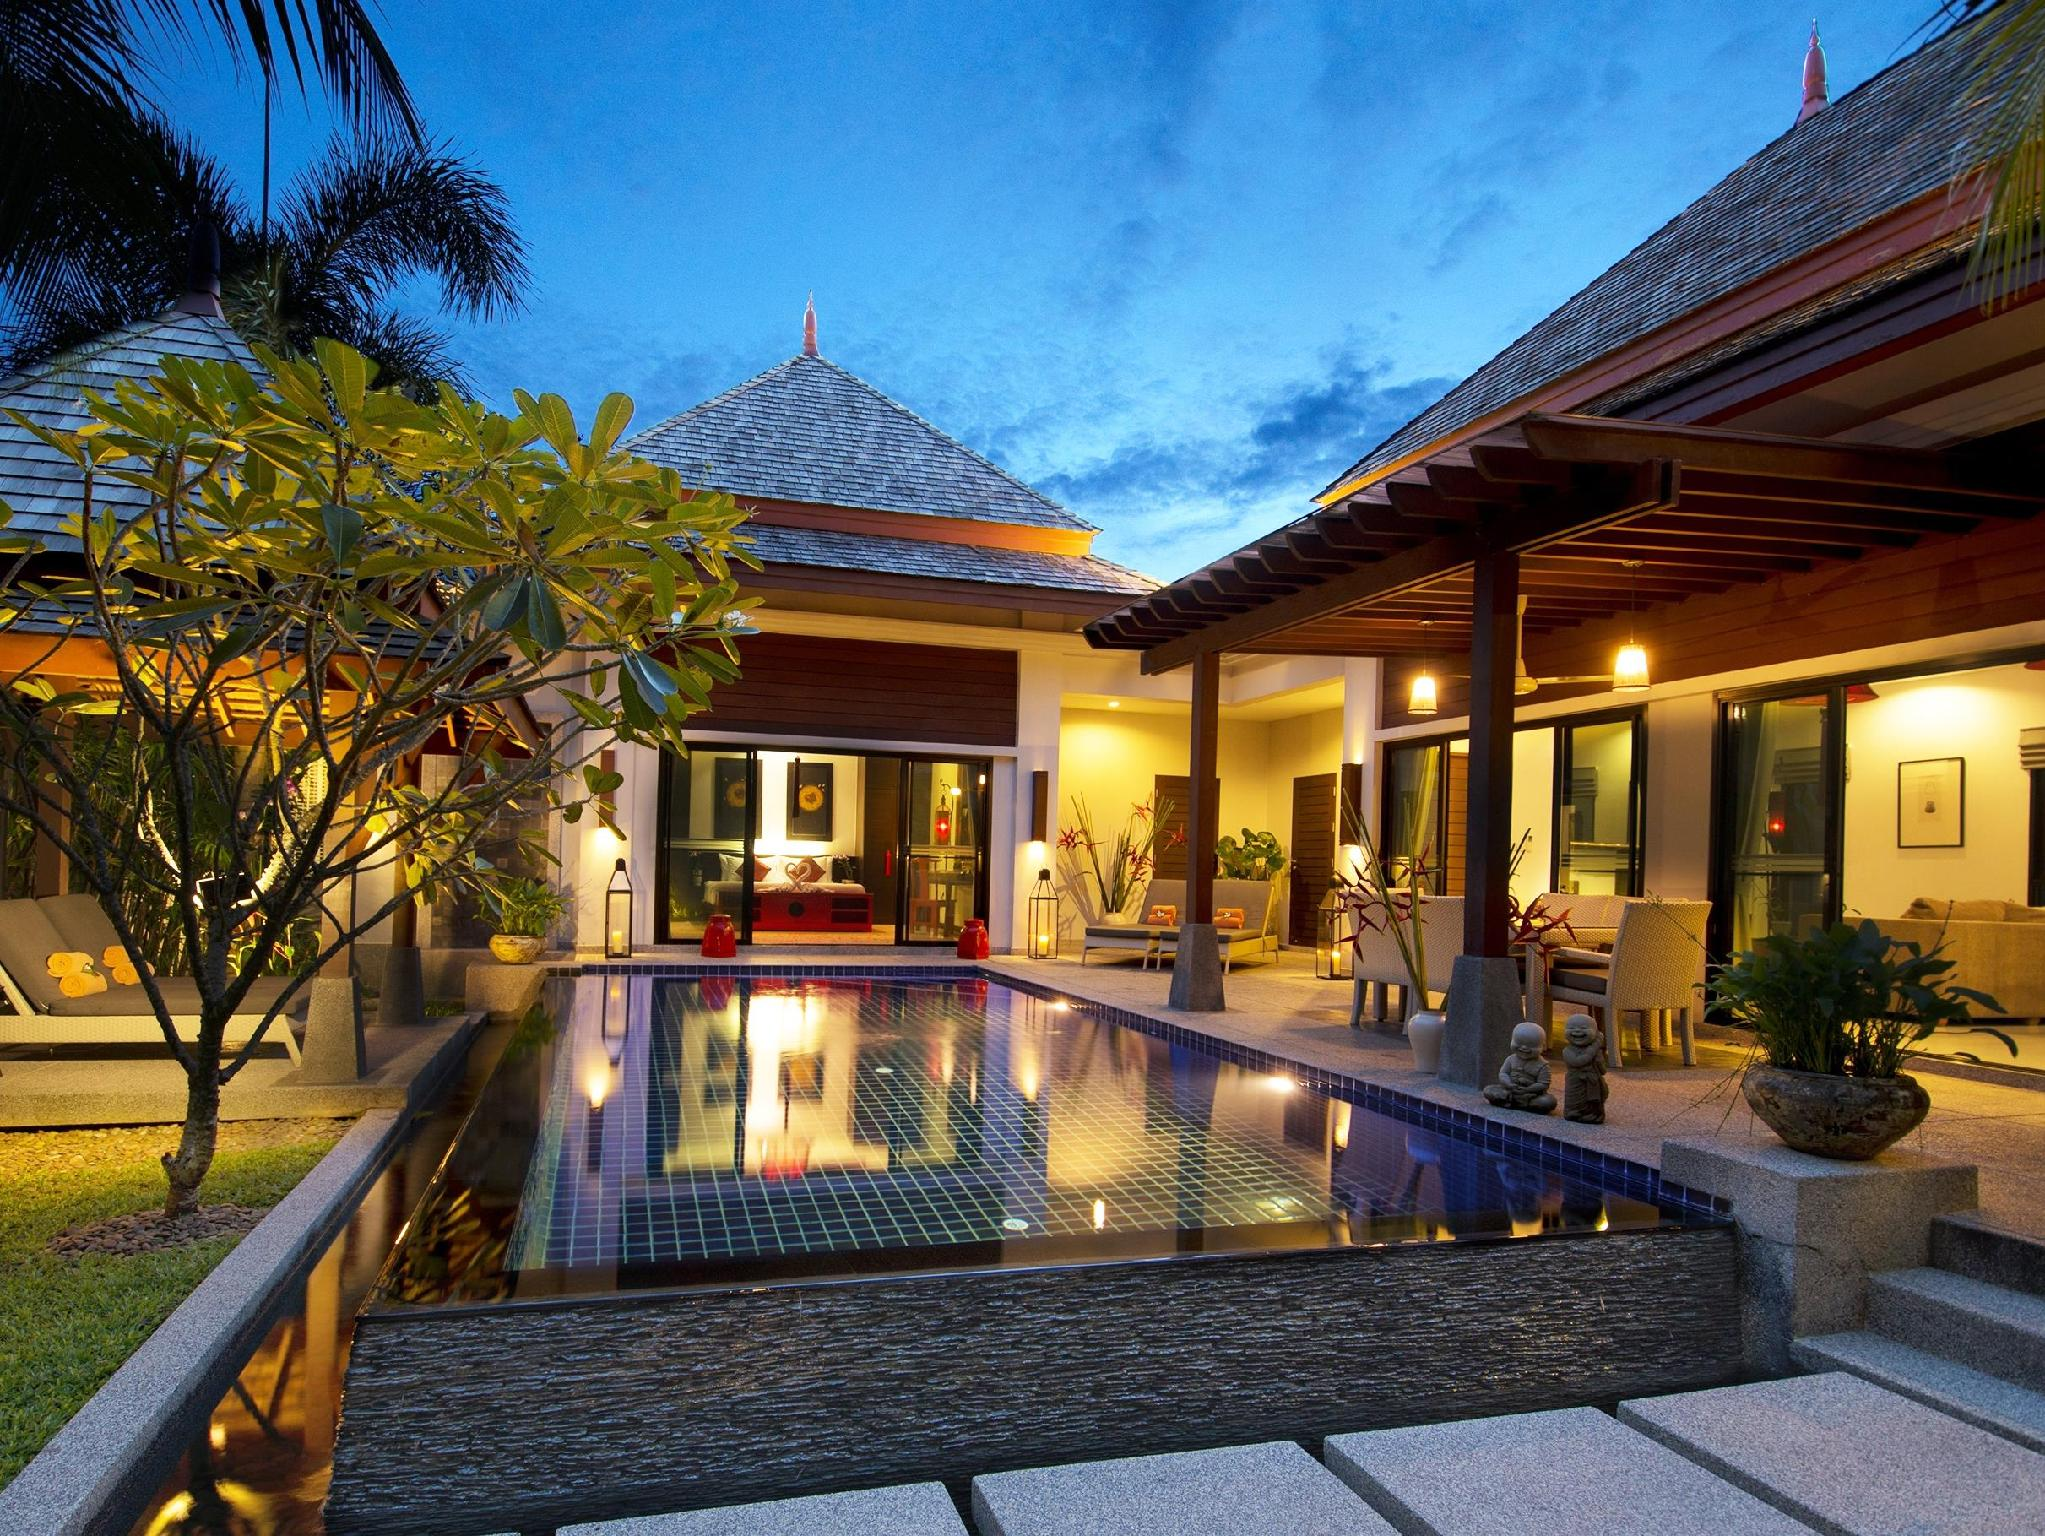 Best Price on The Bell Pool Villa Resort Phuket in Phuket + Reviews!